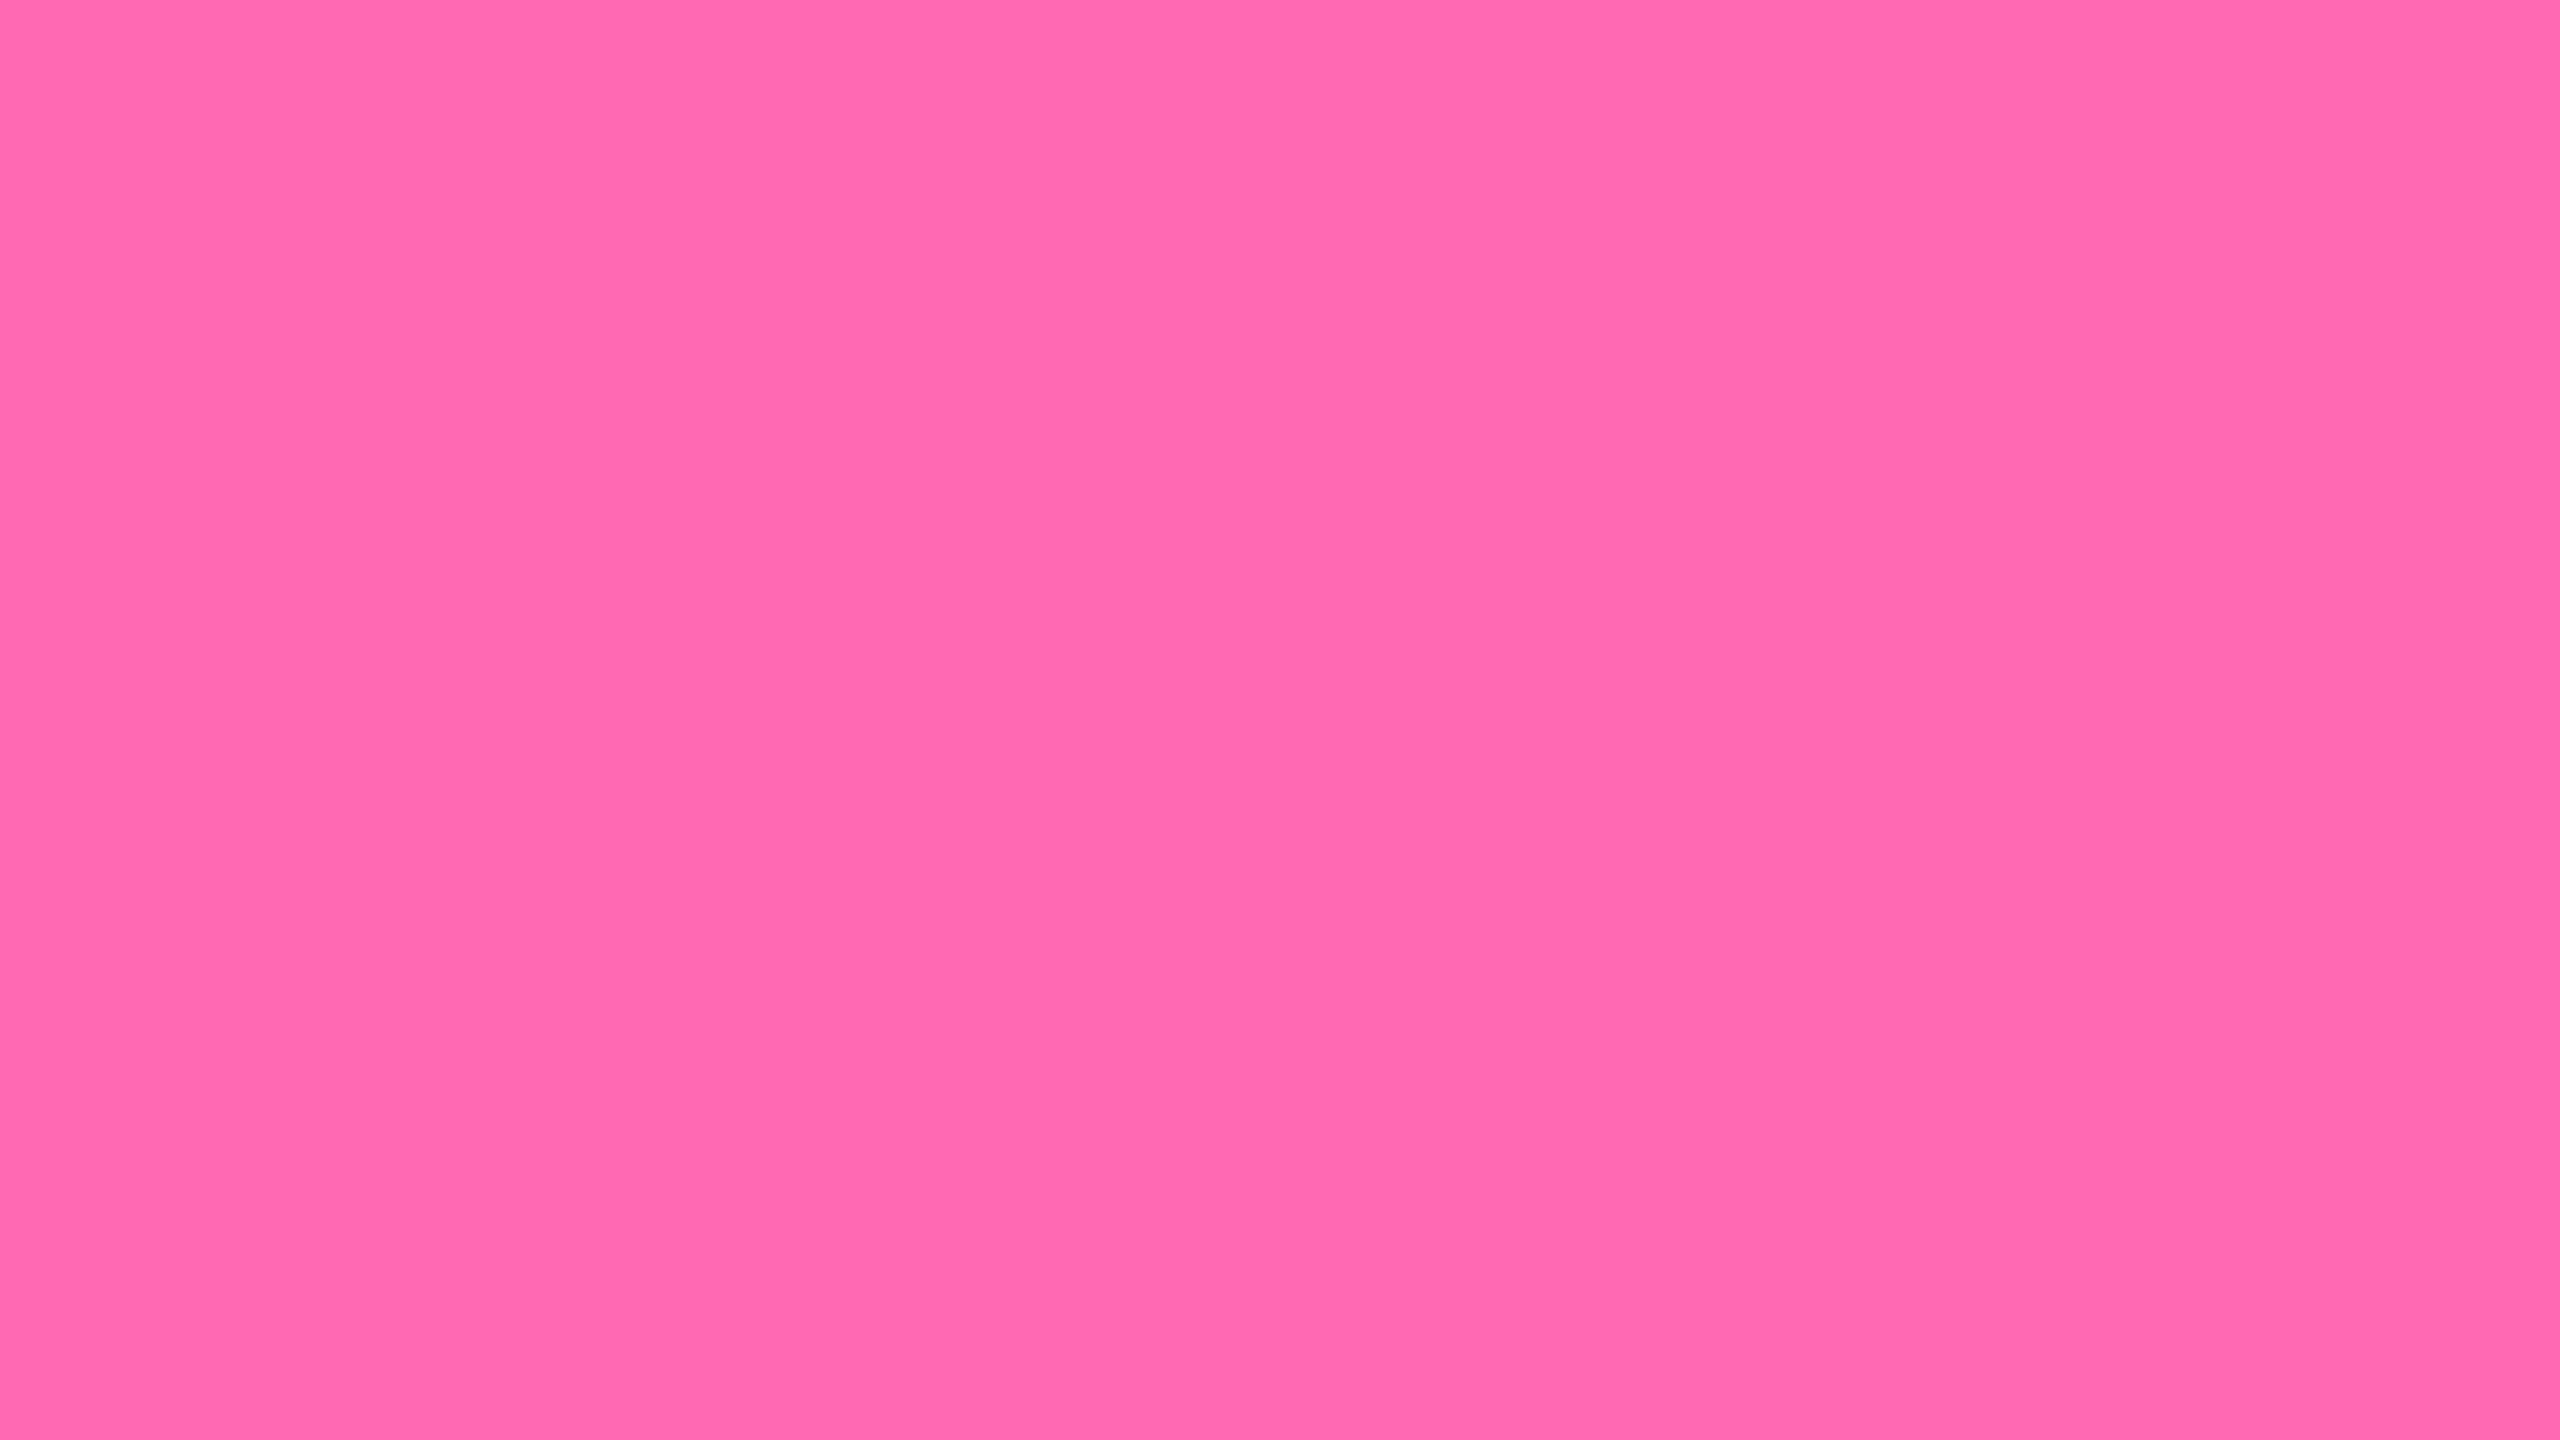 Apple Iphone X Wallpaper From Commercial Barbie Pink Background 53 Images